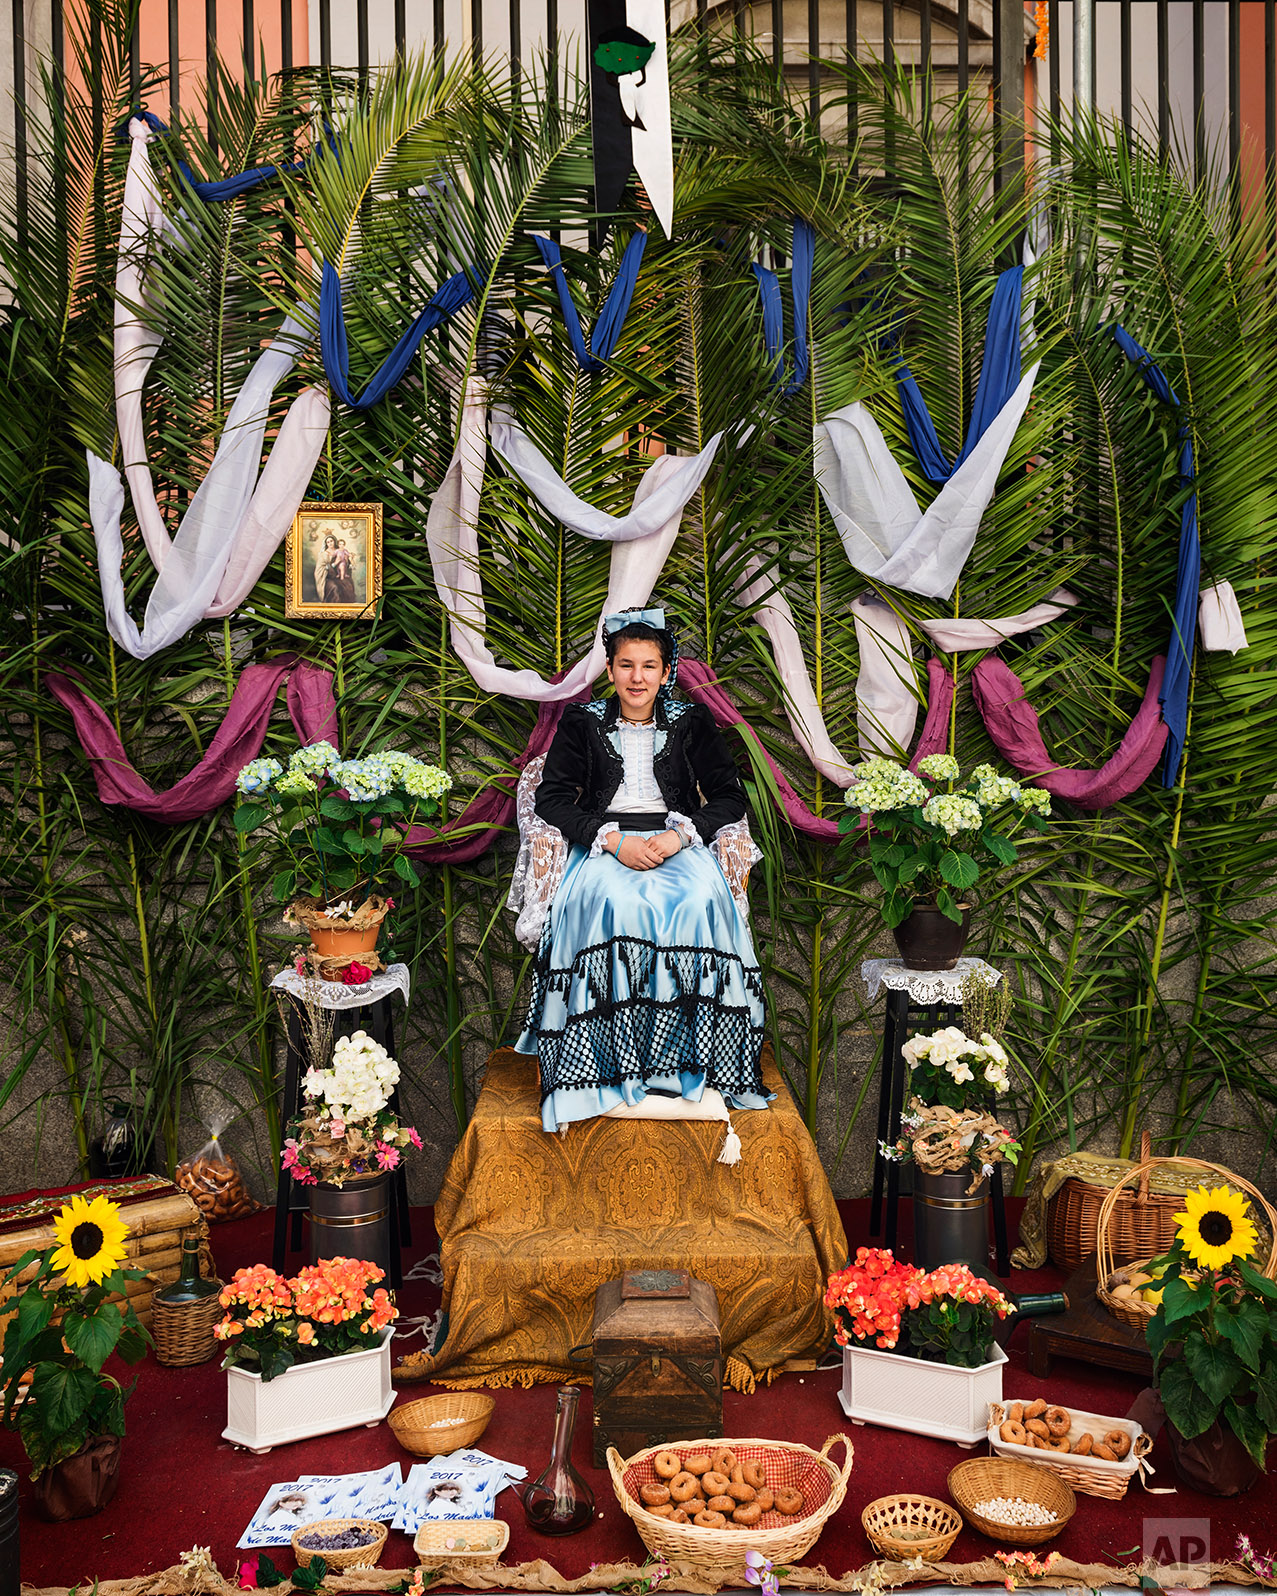 A 'Maya' girl sits in an altar during the traditional celebration of 'Las Mayas' on the streets in Madrid, Spain Sunday, May 7, 2017. (AP Photo/Daniel Ochoa de Olza)